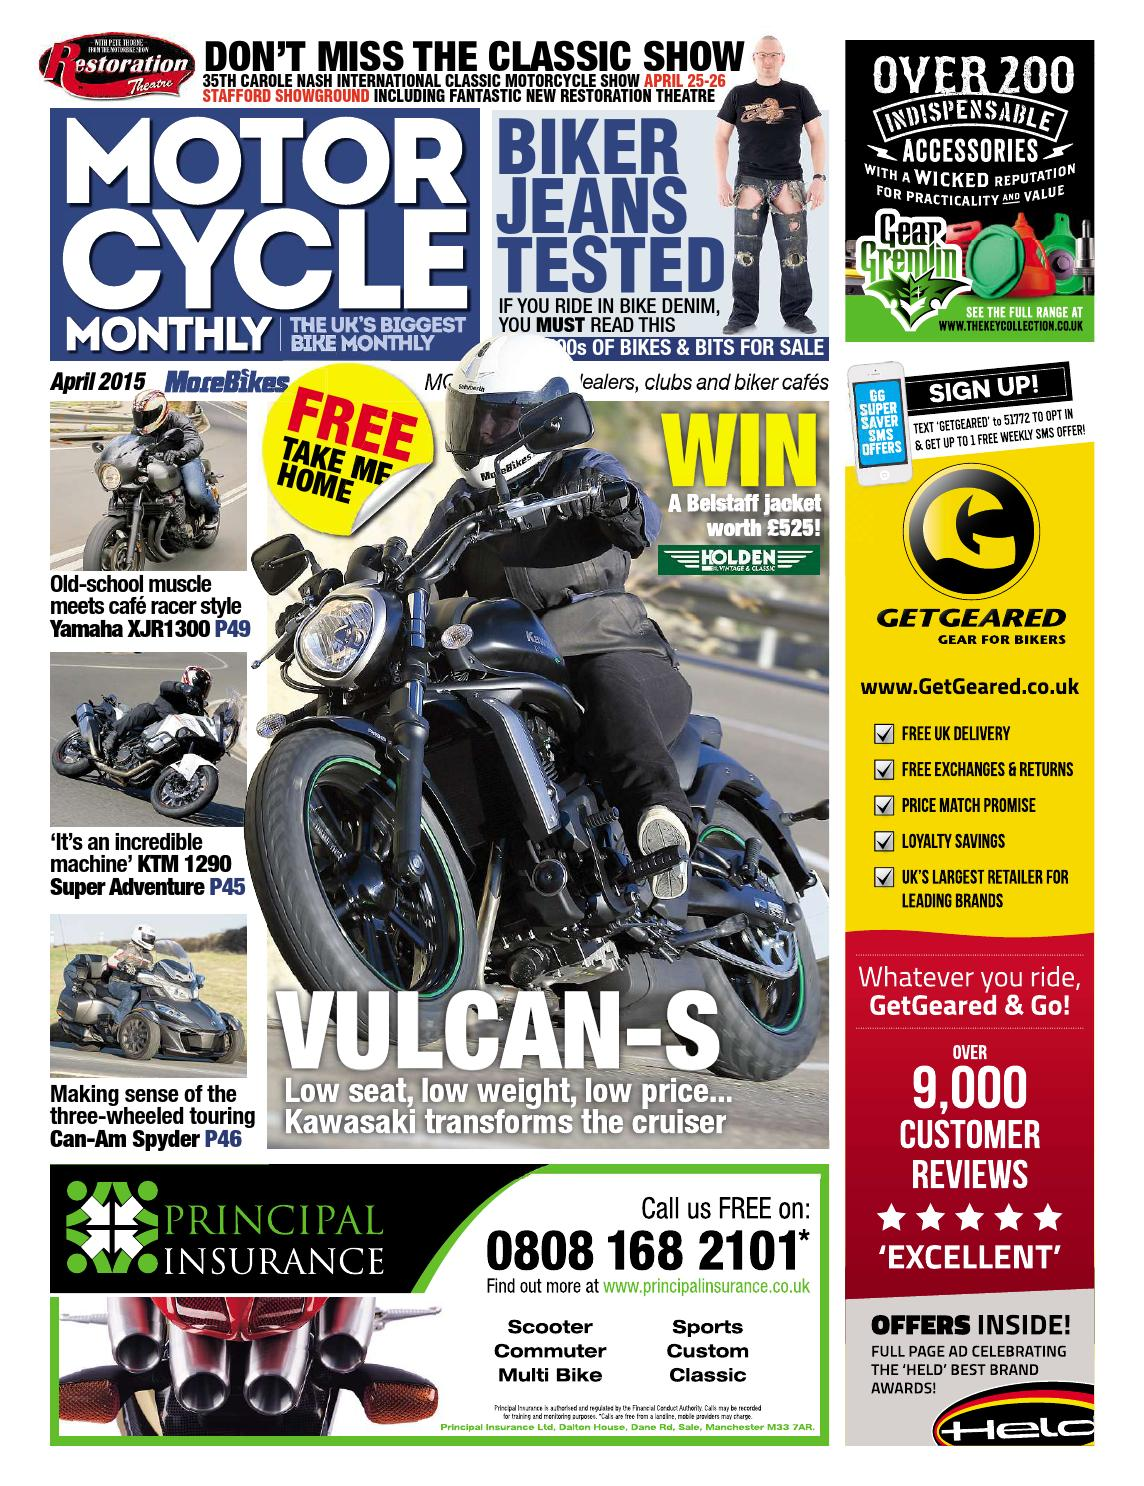 Motor Cycle Monthly April 2015 Full Issue By Mortons Media Group Ltd Honda Cb750 Engine Cutaway Issuu